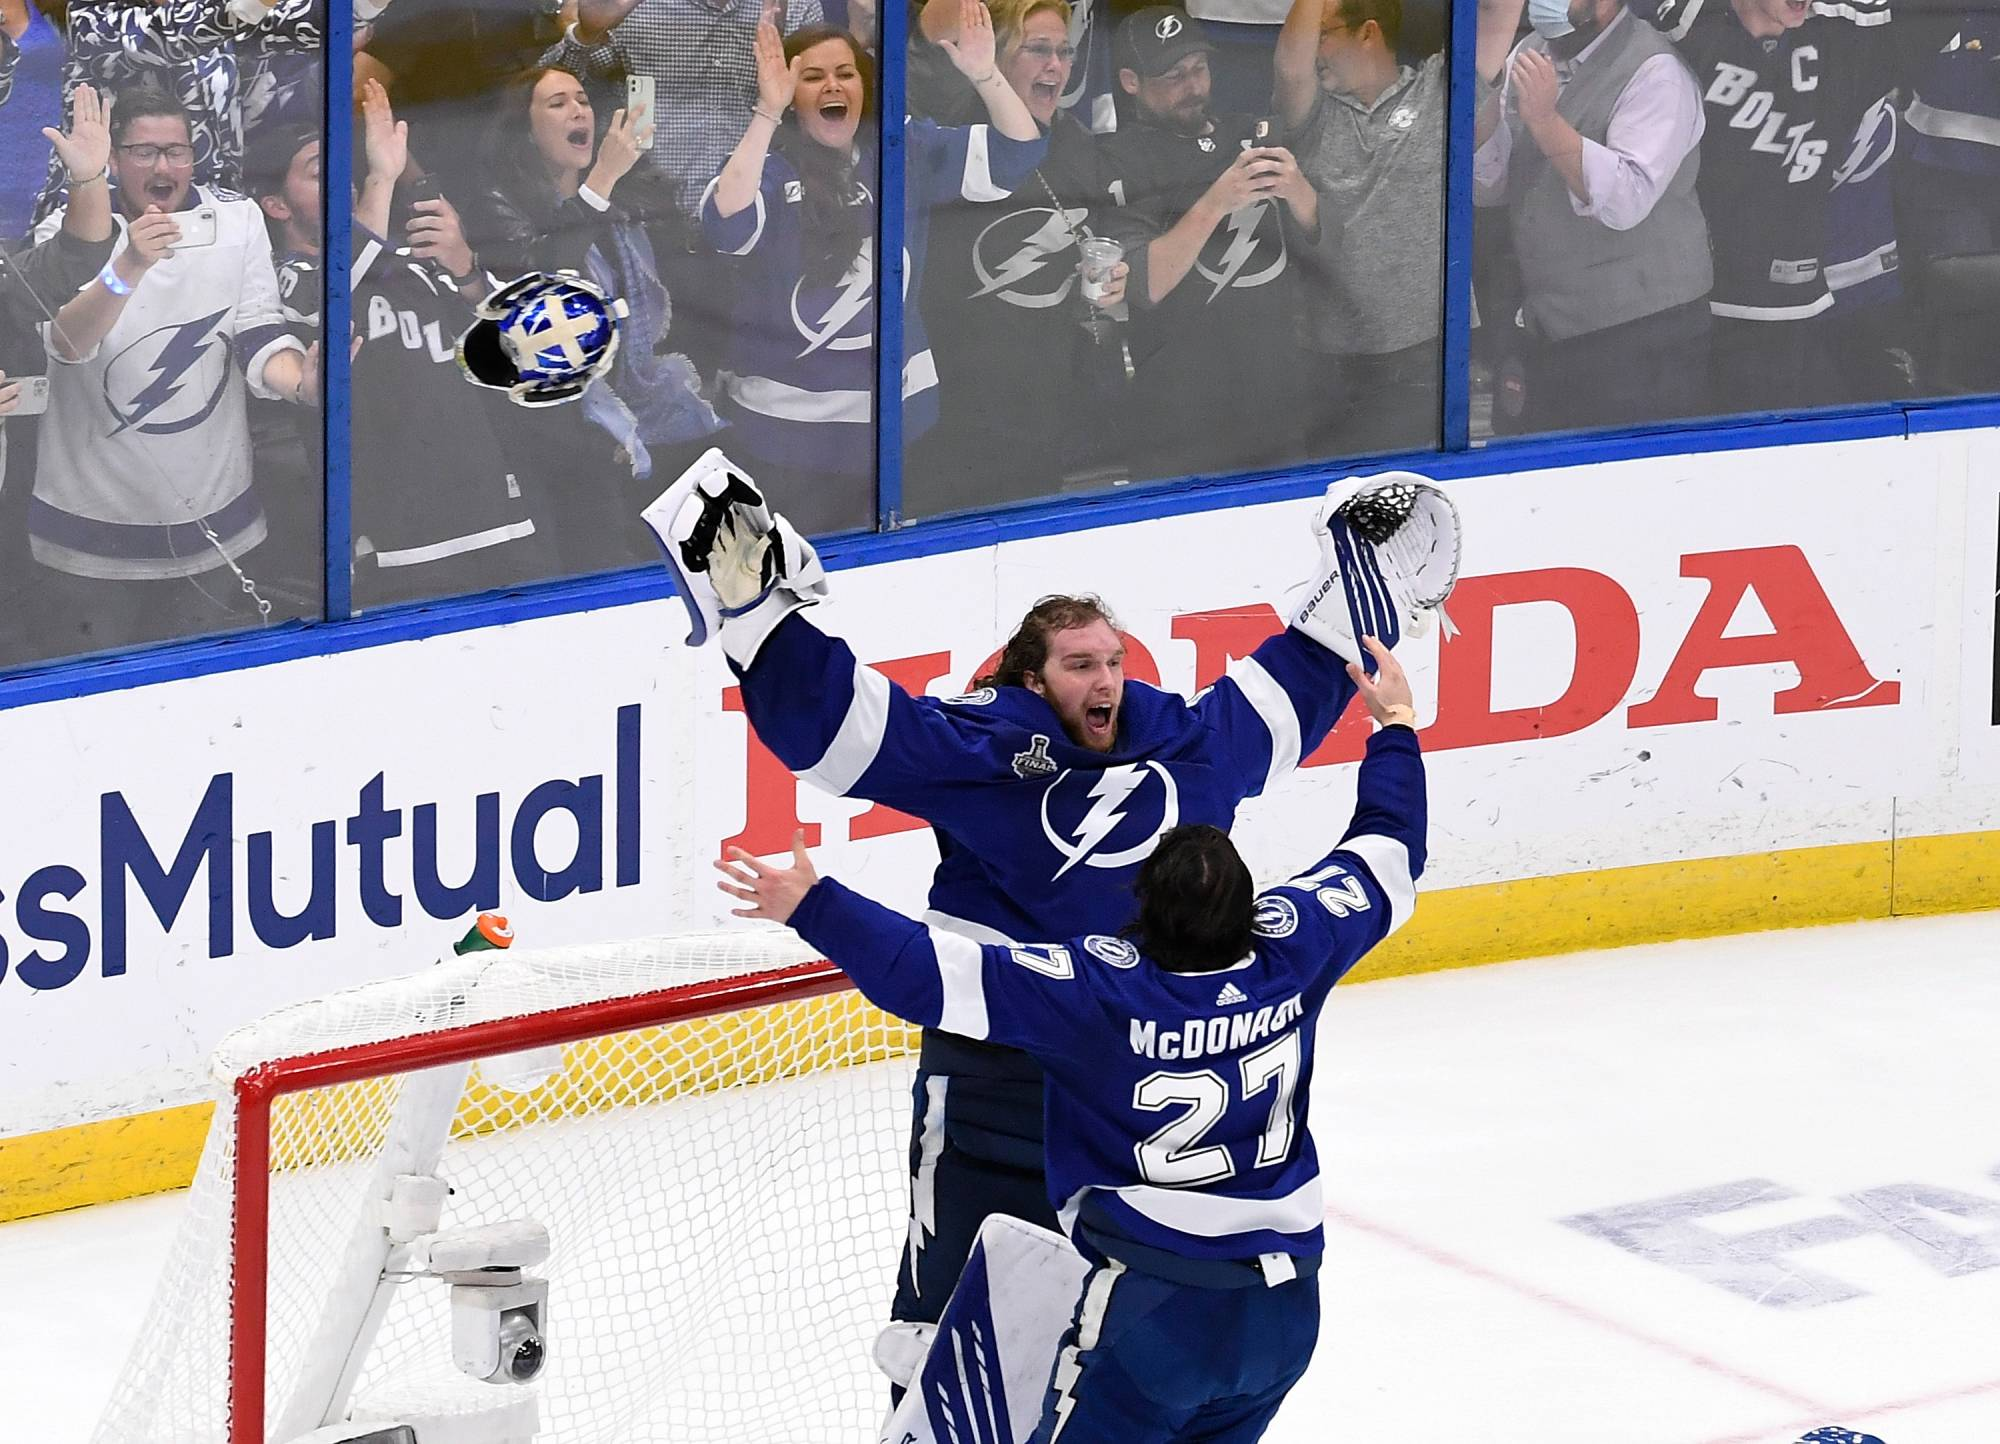 Lightning goaltender Andrei Vasilevskiy (left) celebrates with defenseman Ryan McDonagh after beating the Canadiens in Game 5 of the Stanley Cup Final to clinch the title in Tampa, Florida, on July 7, 2021.    USA TODAY / VIA REUTERS